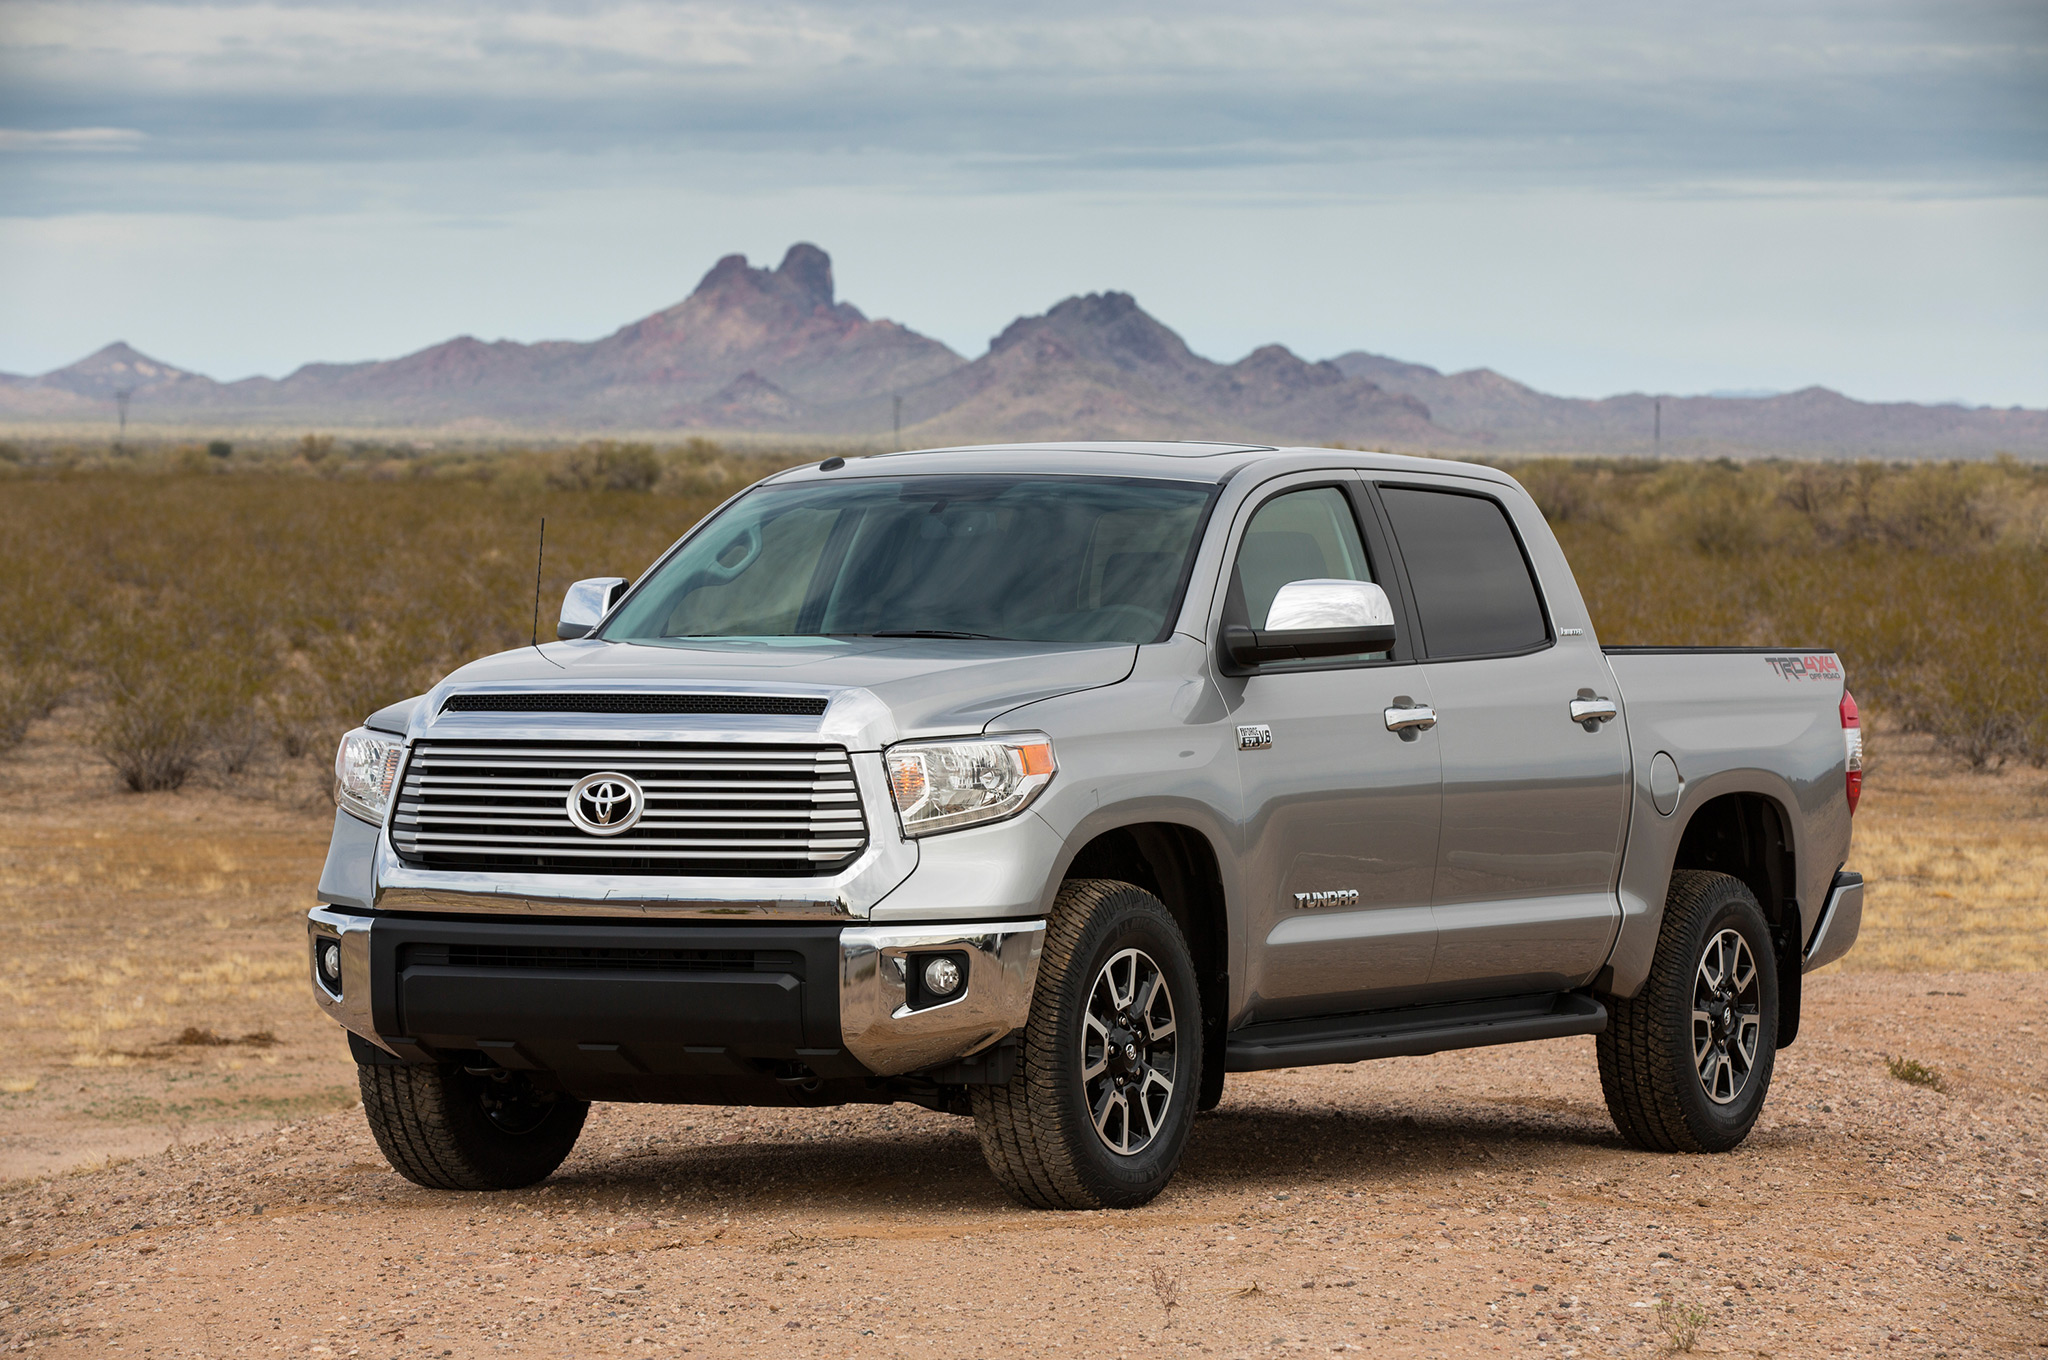 HQ Toyota Tundra Wallpapers | File 740.7Kb